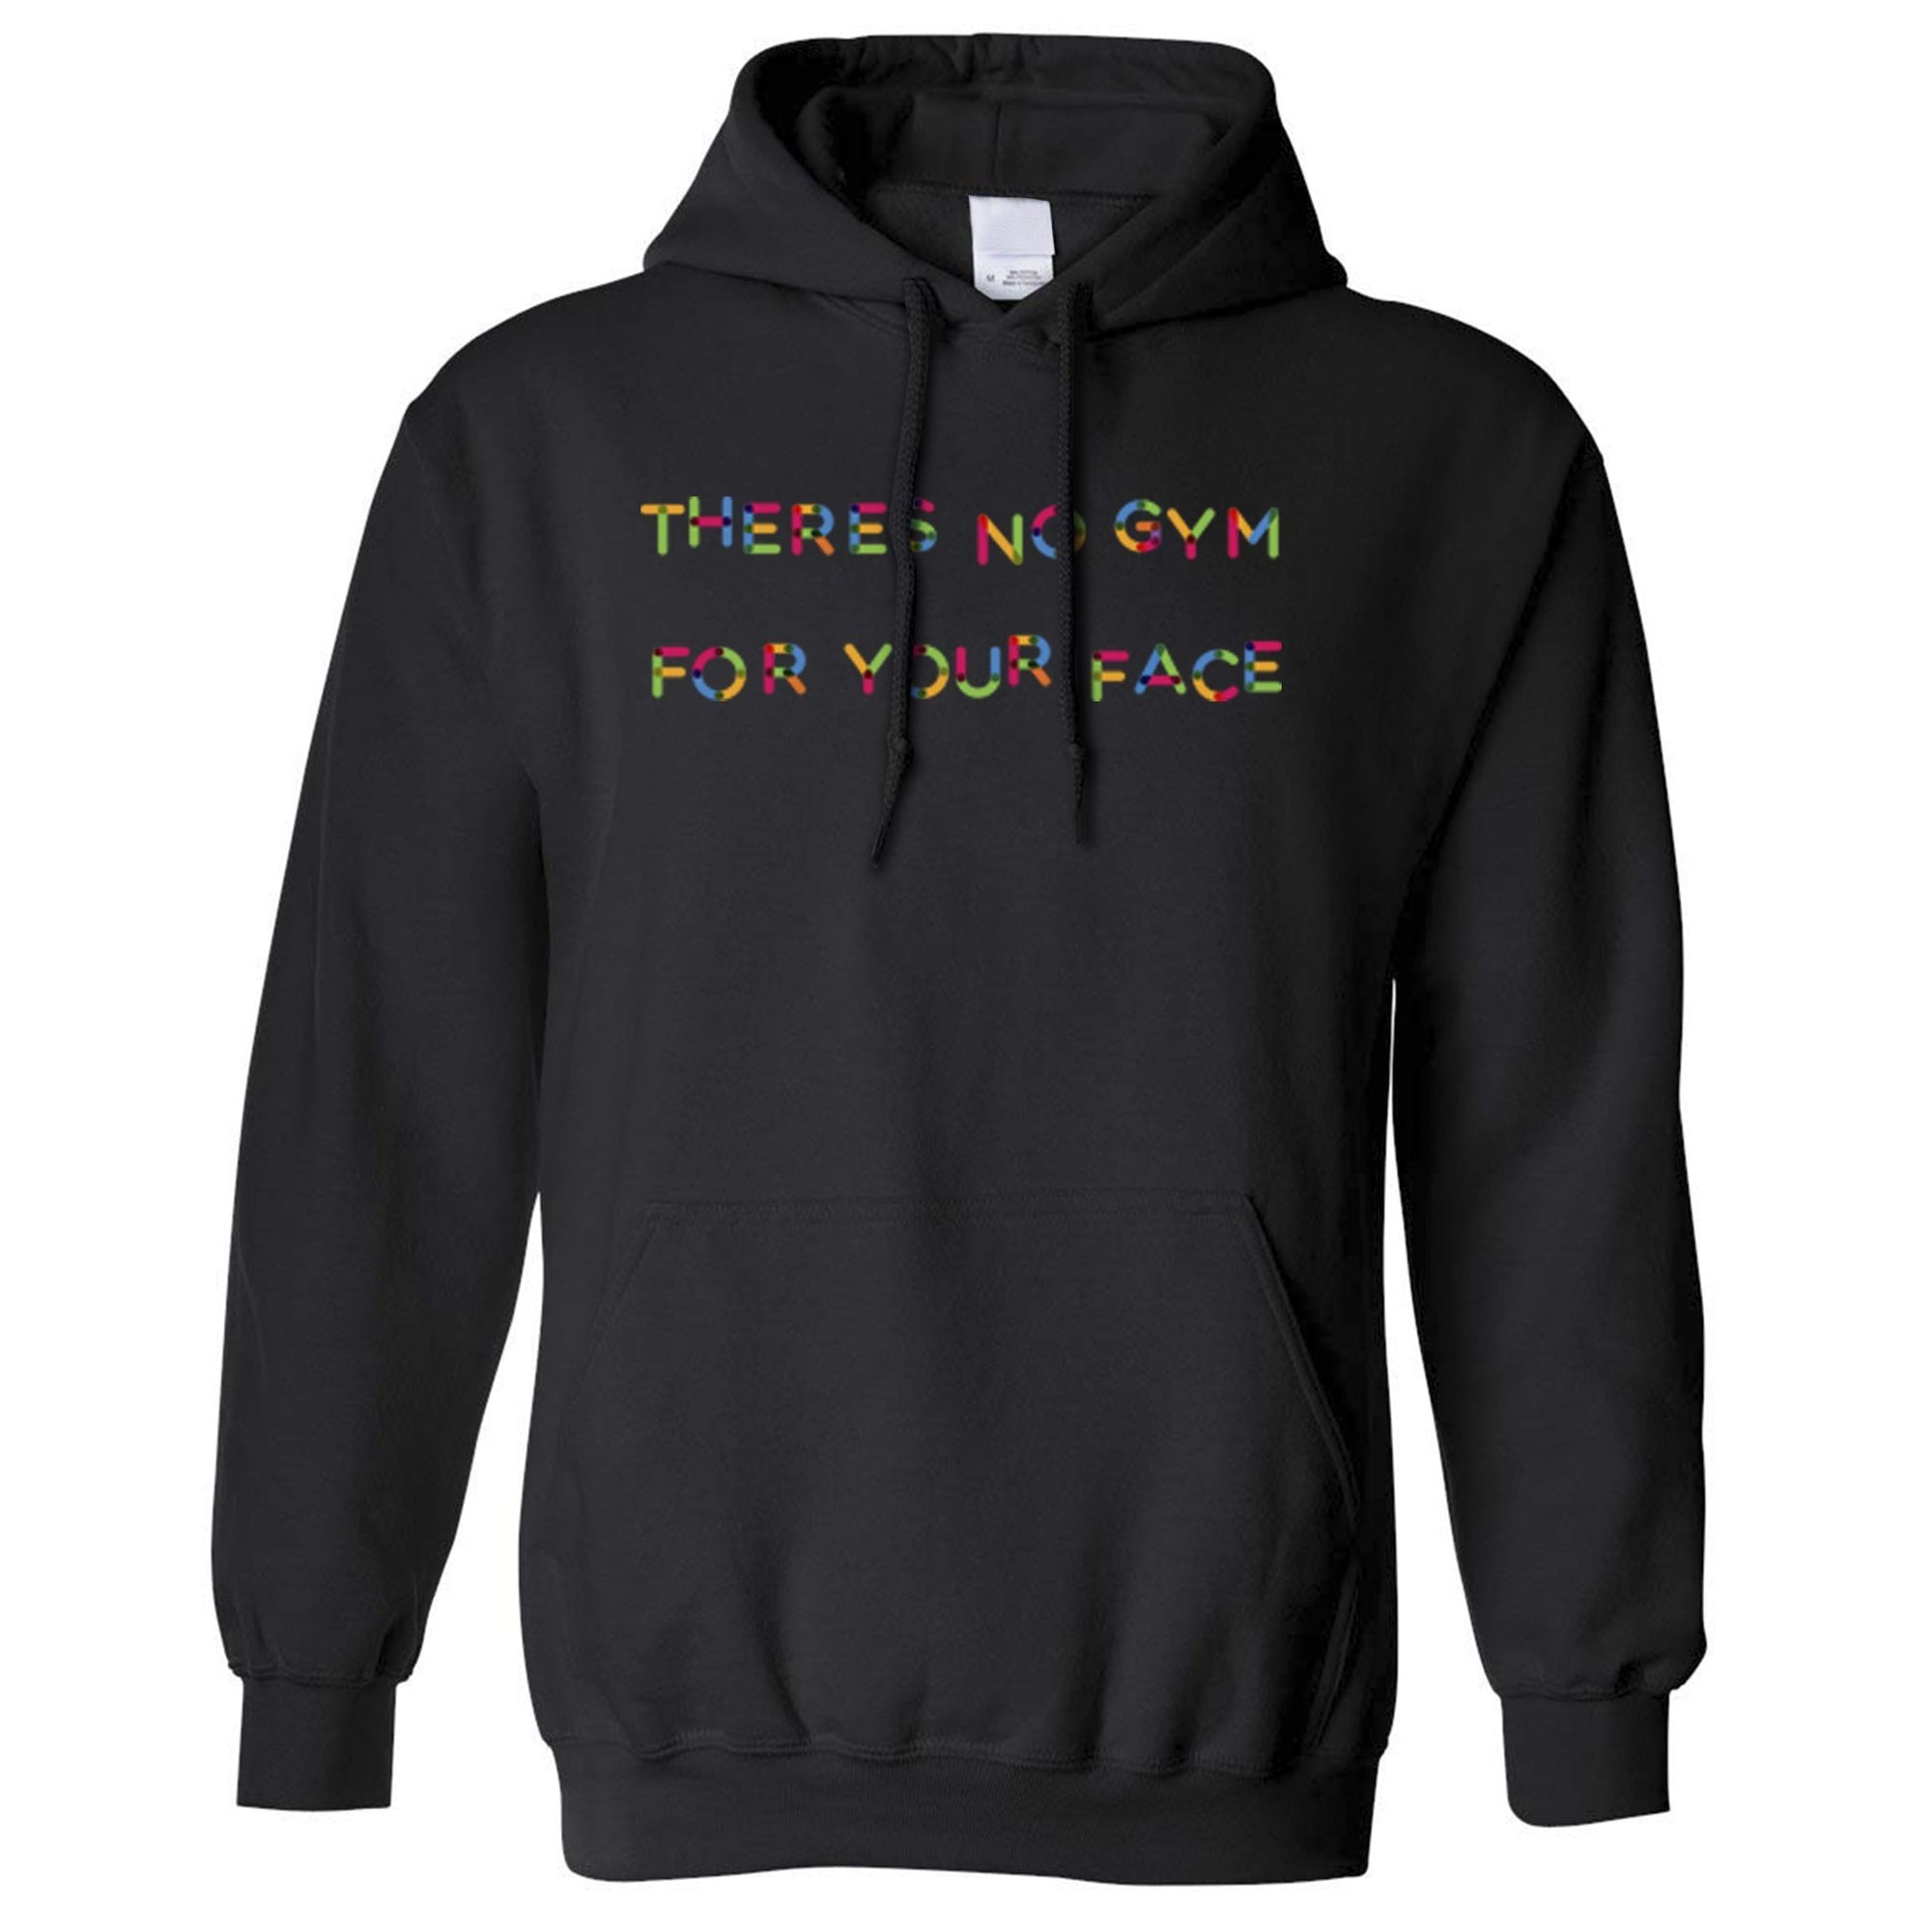 Novelty Slogan Hoodie Hood There's No Gym For Your Face